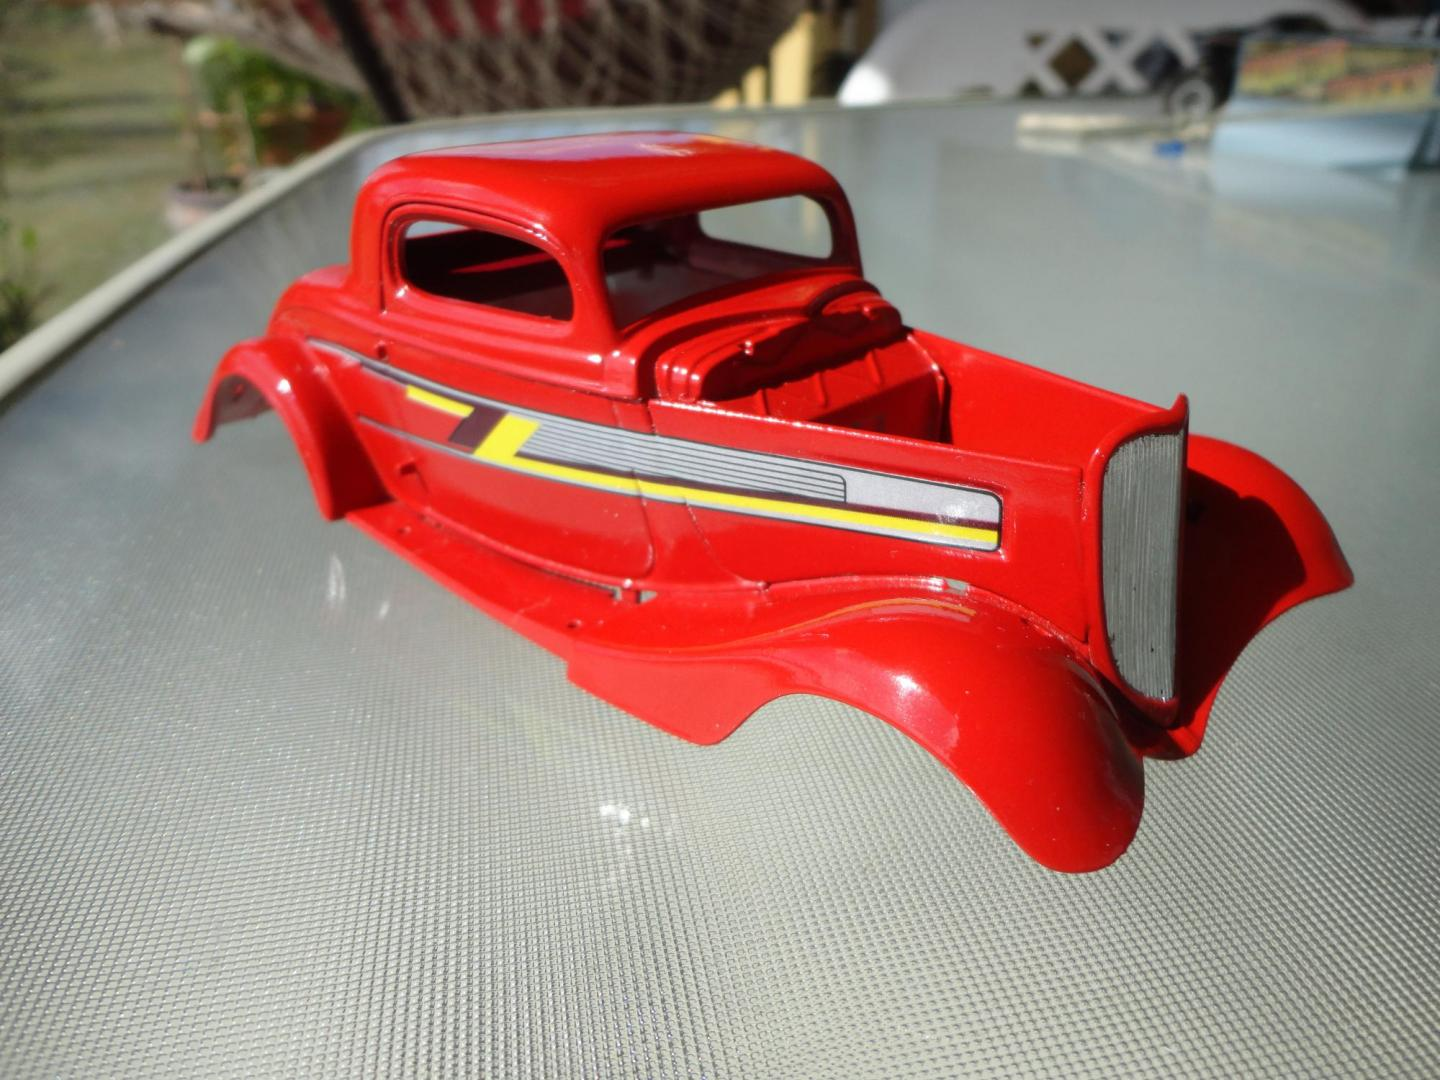 33 Ford Zz Top Eliminator On The Workbench Model Cars